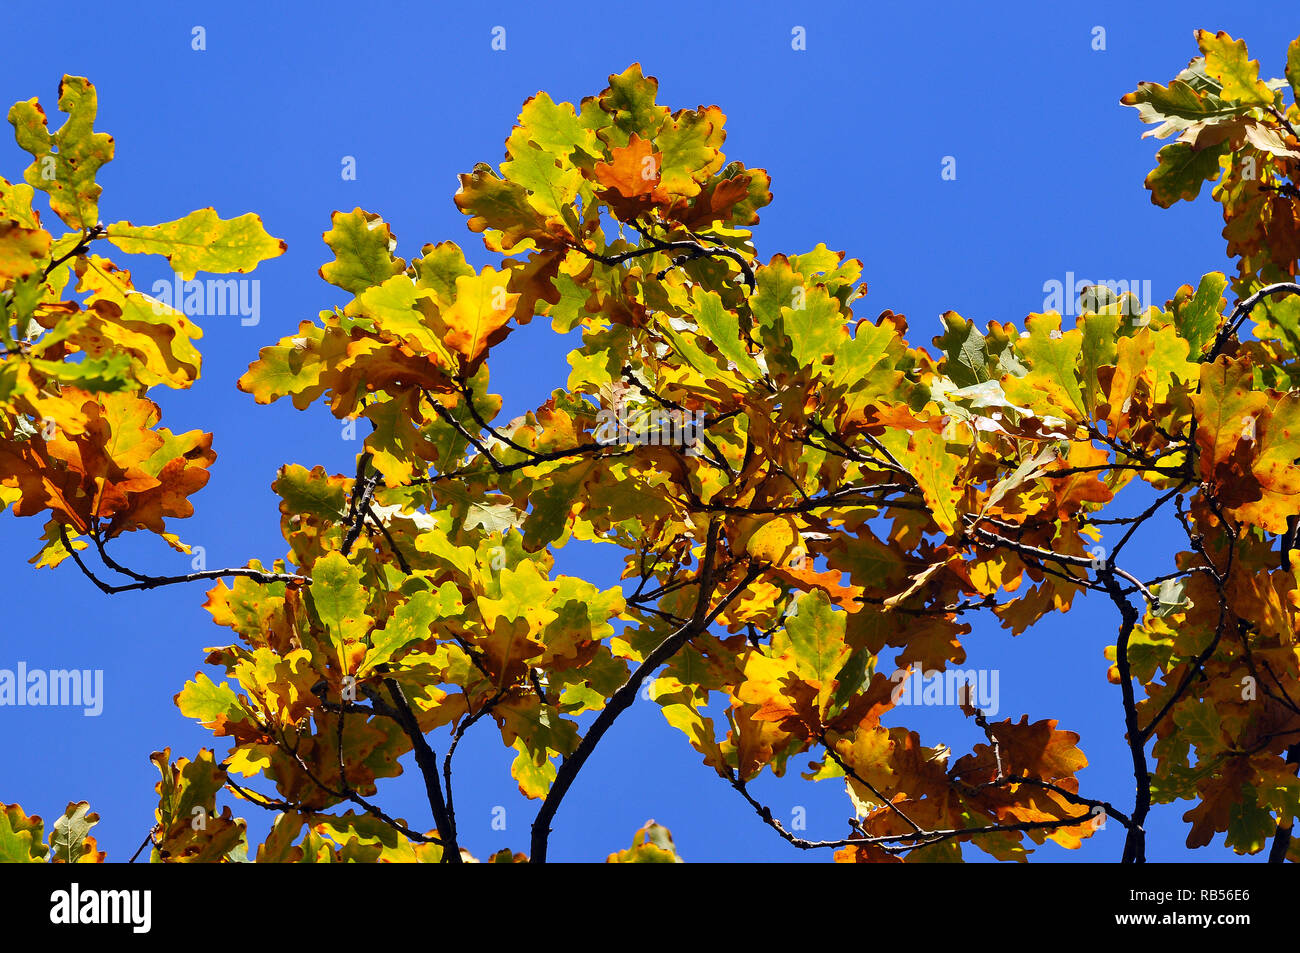 Yellowish oak leaves. Oak, Eichen, tölgy, Quercus sp. Stock Photo